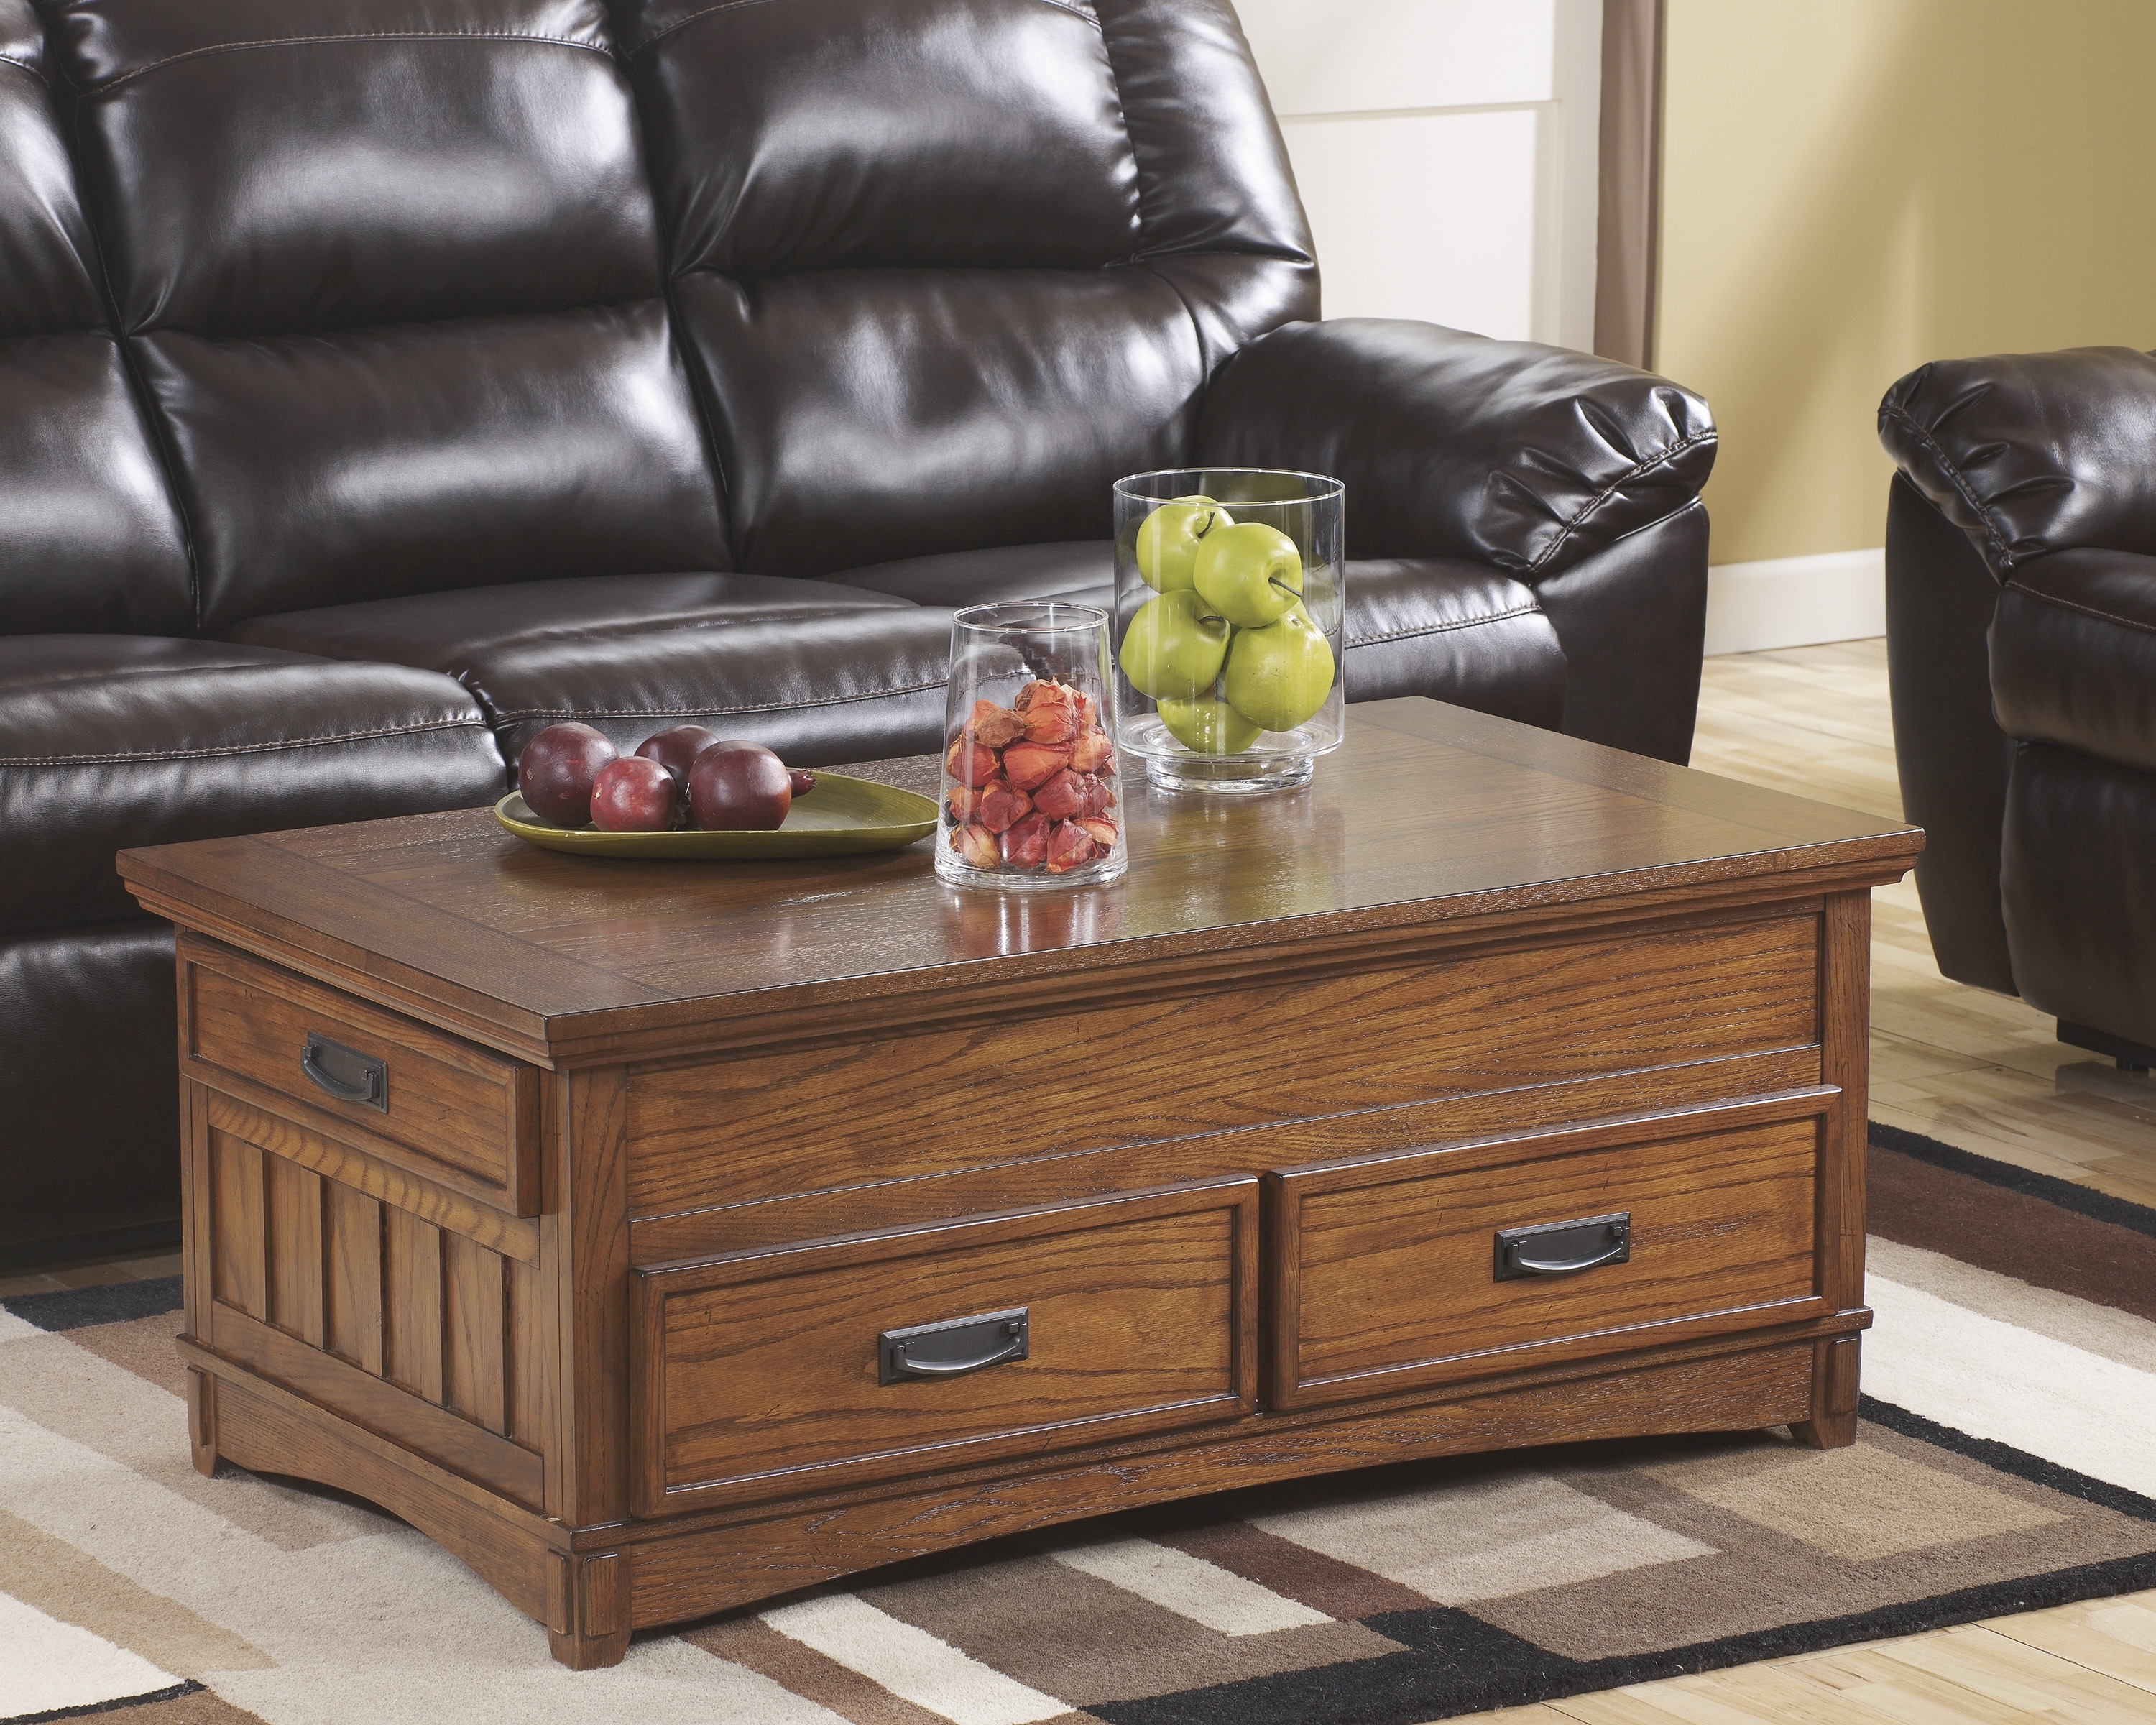 Large Lift Top Coffee Table – Coffee Table Ideas Regarding 2017 Jaxon Grey Lift Top Cocktail Tables (View 12 of 20)